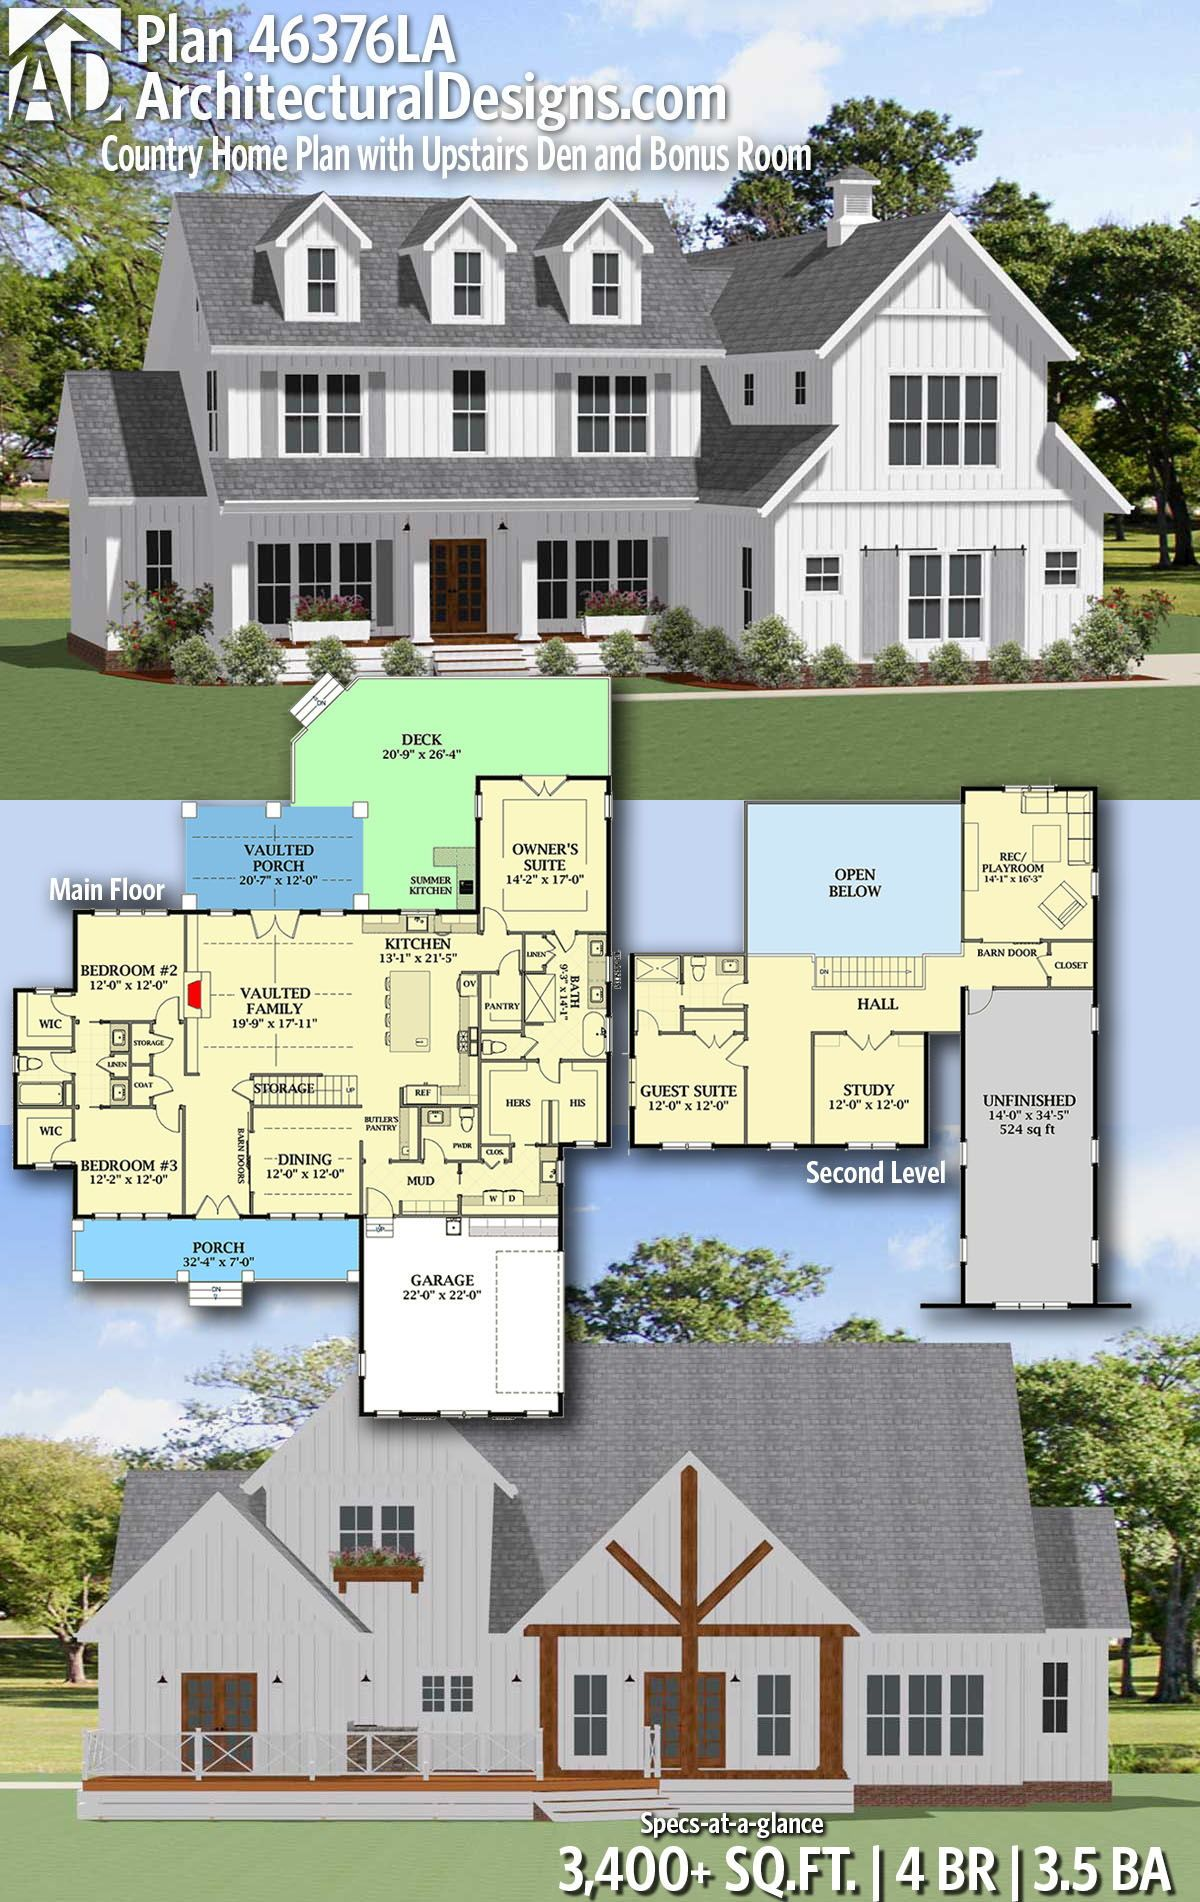 Architectural designs home plan la gives you bedrooms baths and sq ft ready when are where do want to build also house plans archdesigns on pinterest rh